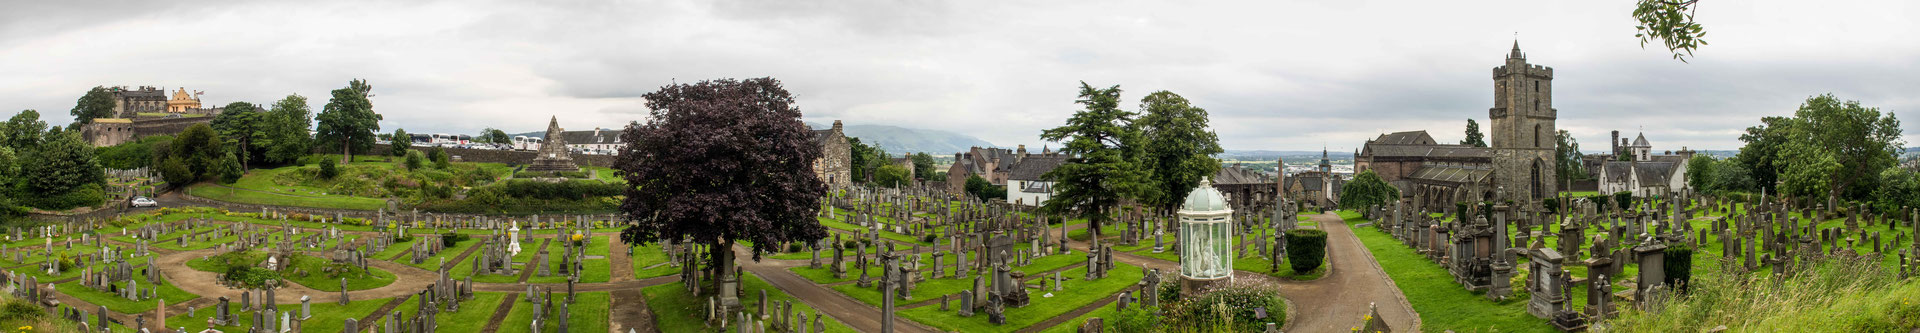 Bild: Stirling Alter Friedhof mit Castle und Holy Rude